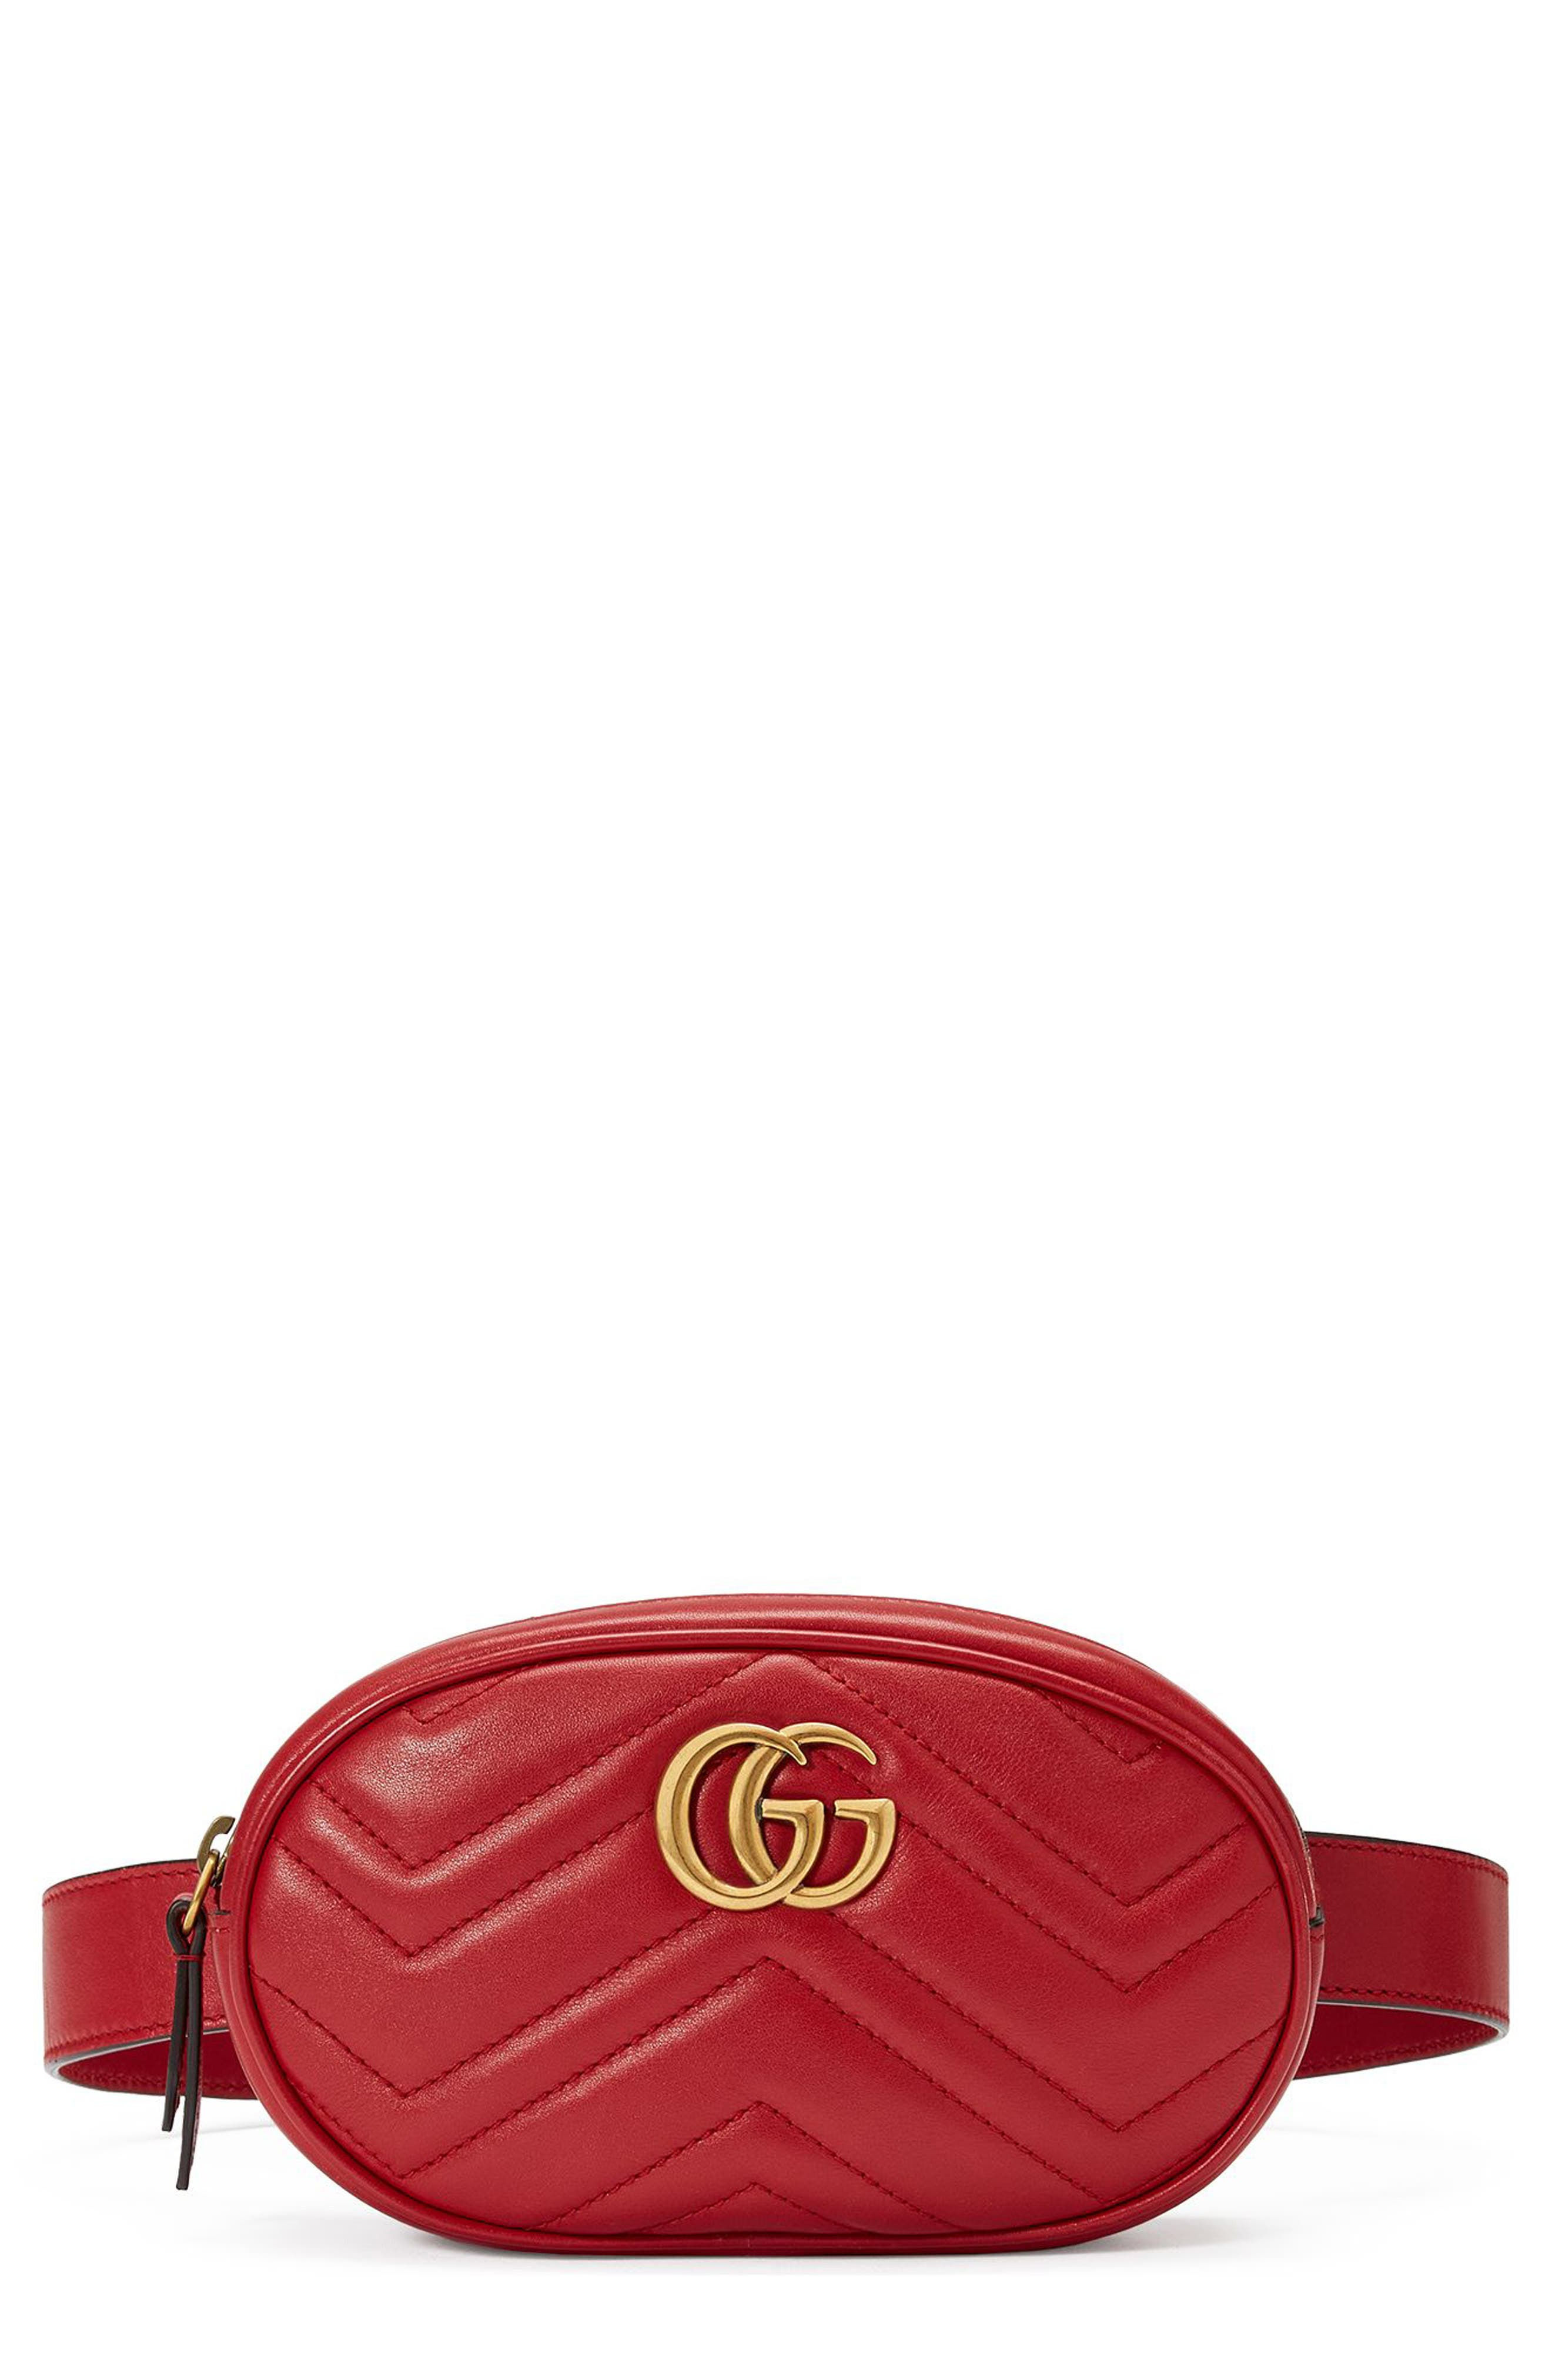 546051d0877a Gucci Gg Marmont 2.0 Matelasse Leather Belt Bag - Red